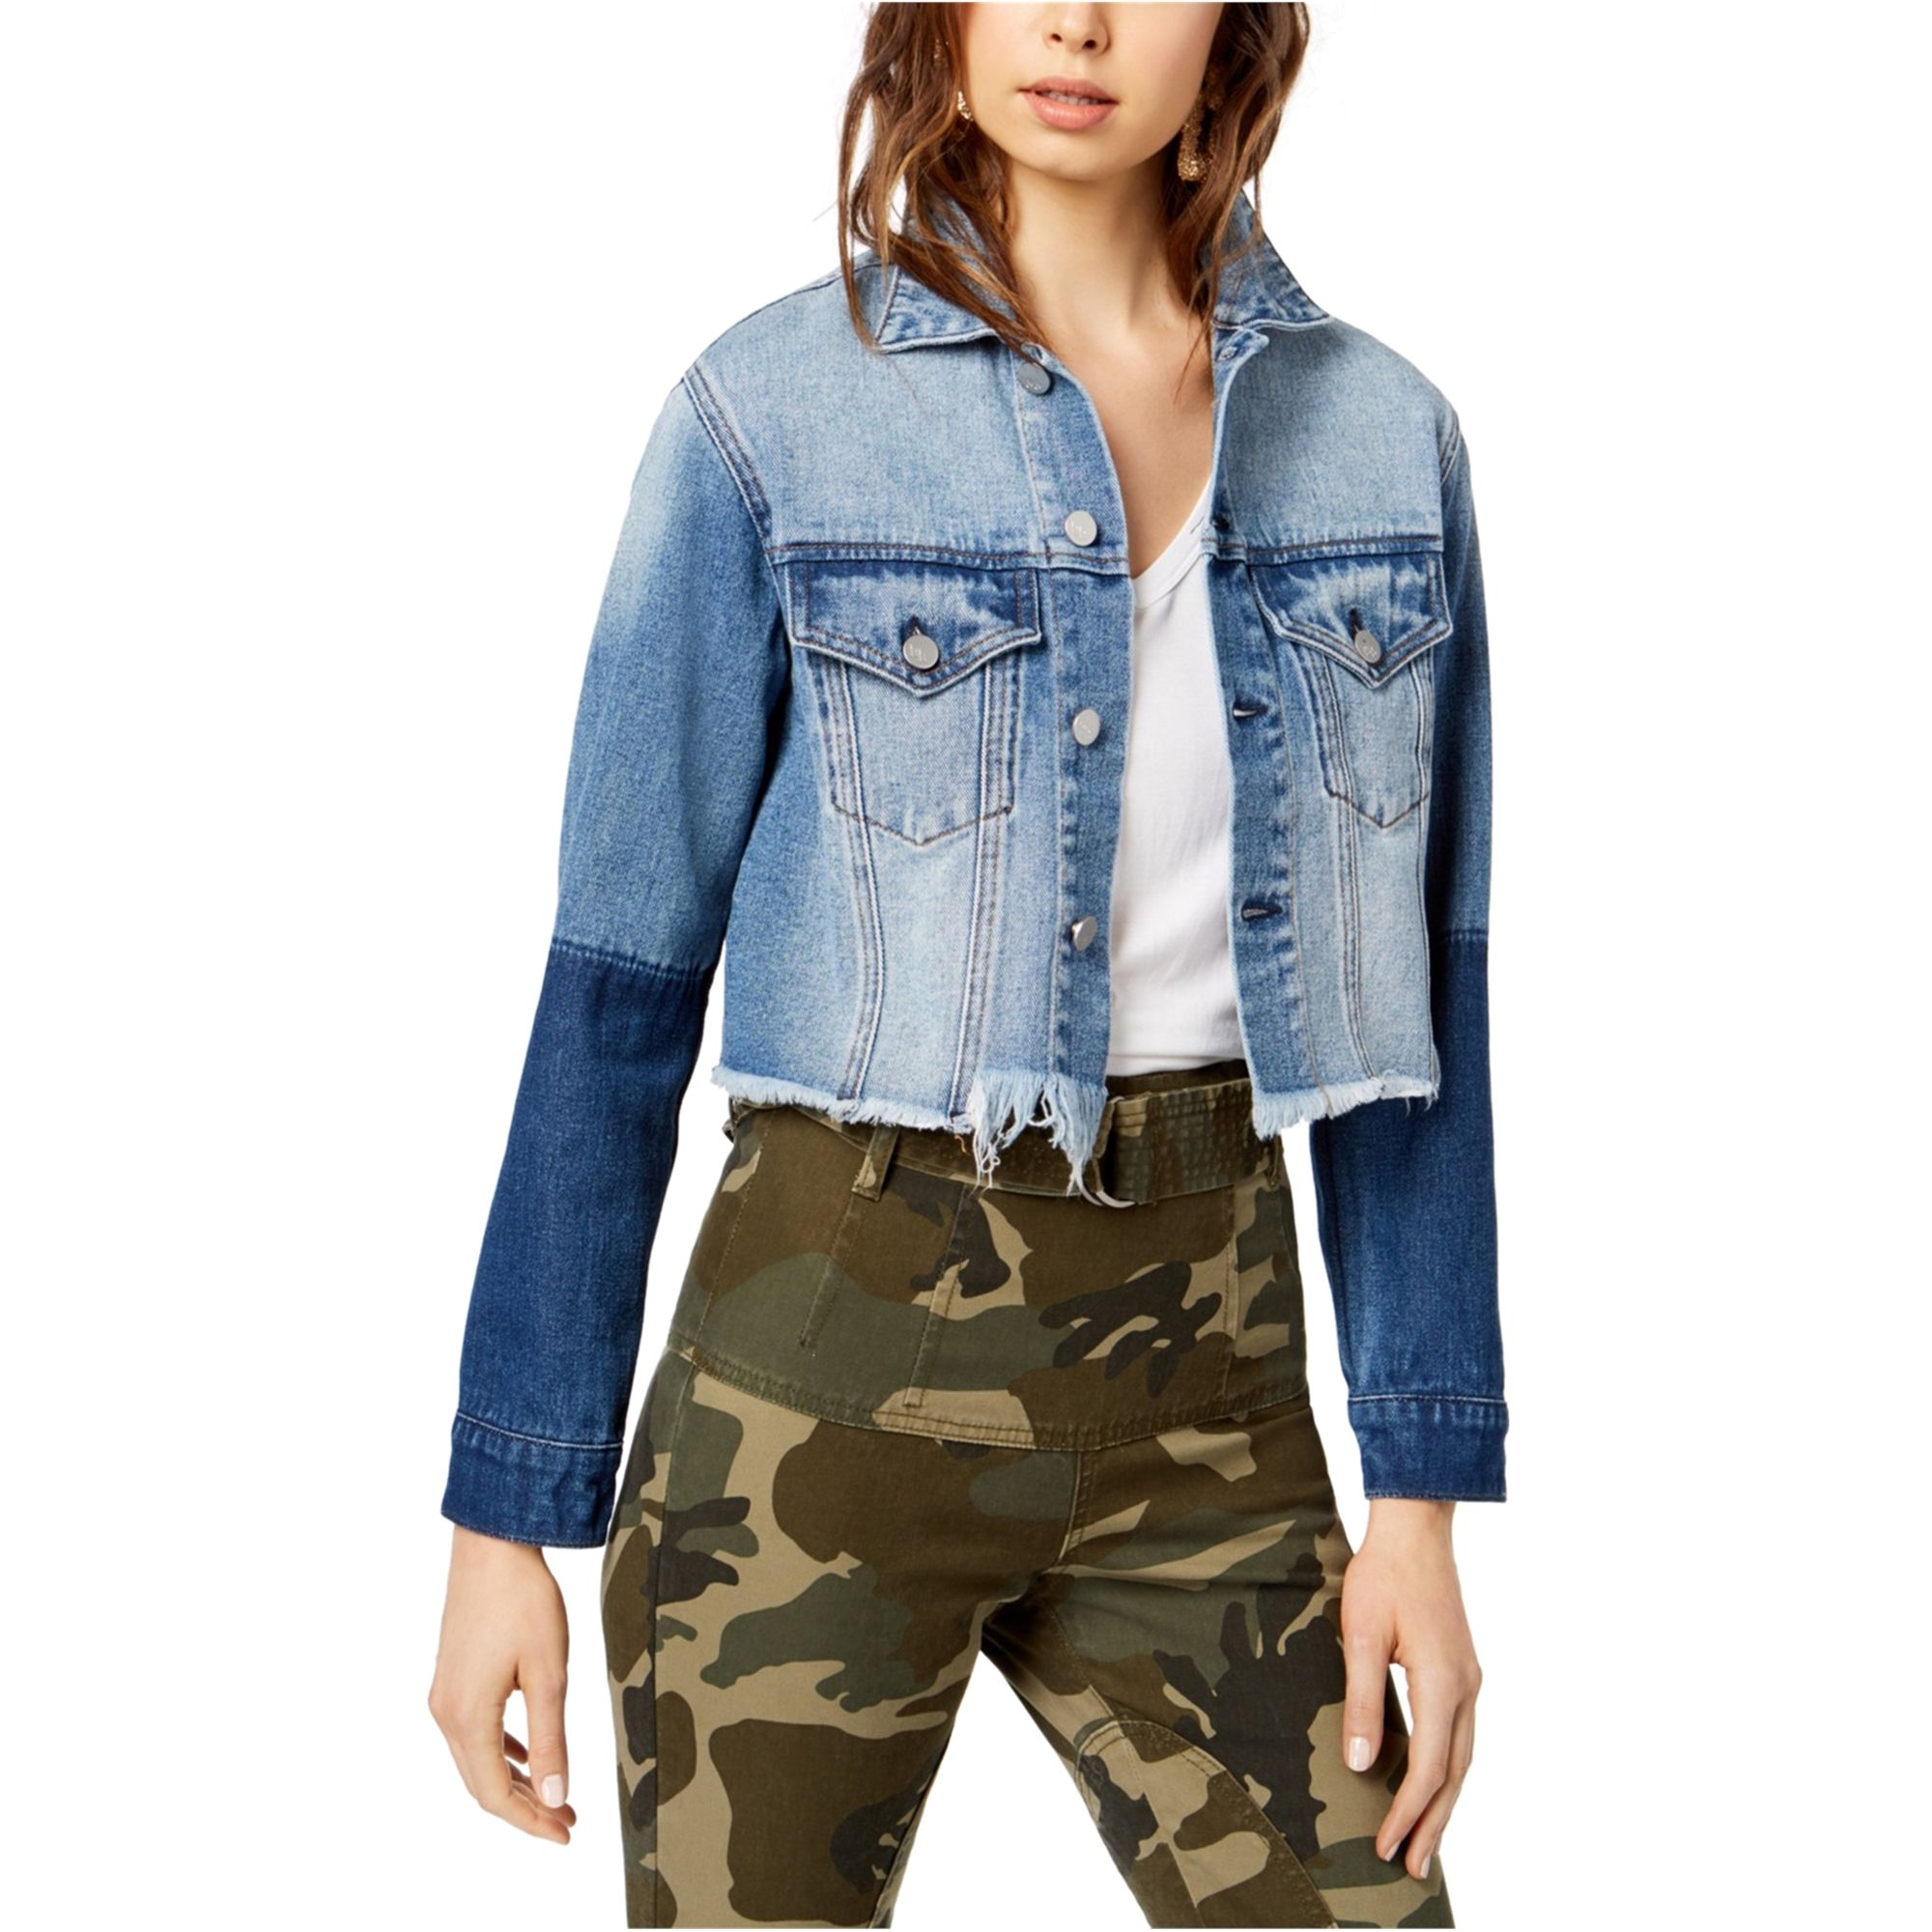 Kendall Kylie Kendall Kylie Womens Cropped Jacket Walmart Com Womens Cropped Jacket Denim Jacket Casual Denim Jacket [ 2000 x 2000 Pixel ]